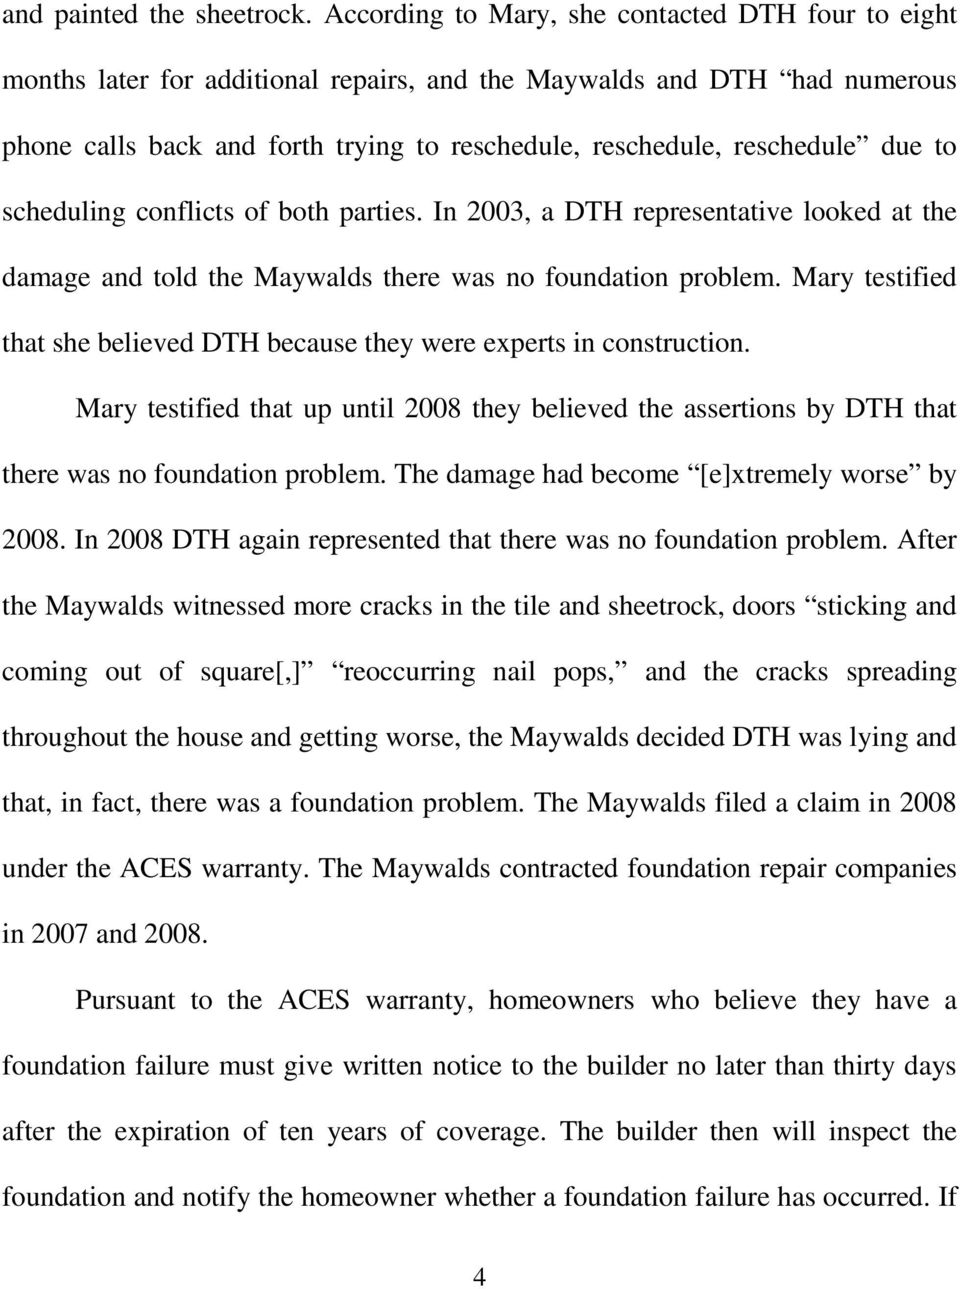 due to scheduling conflicts of both parties. In 2003, a DTH representative looked at the damage and told the Maywalds there was no foundation problem.